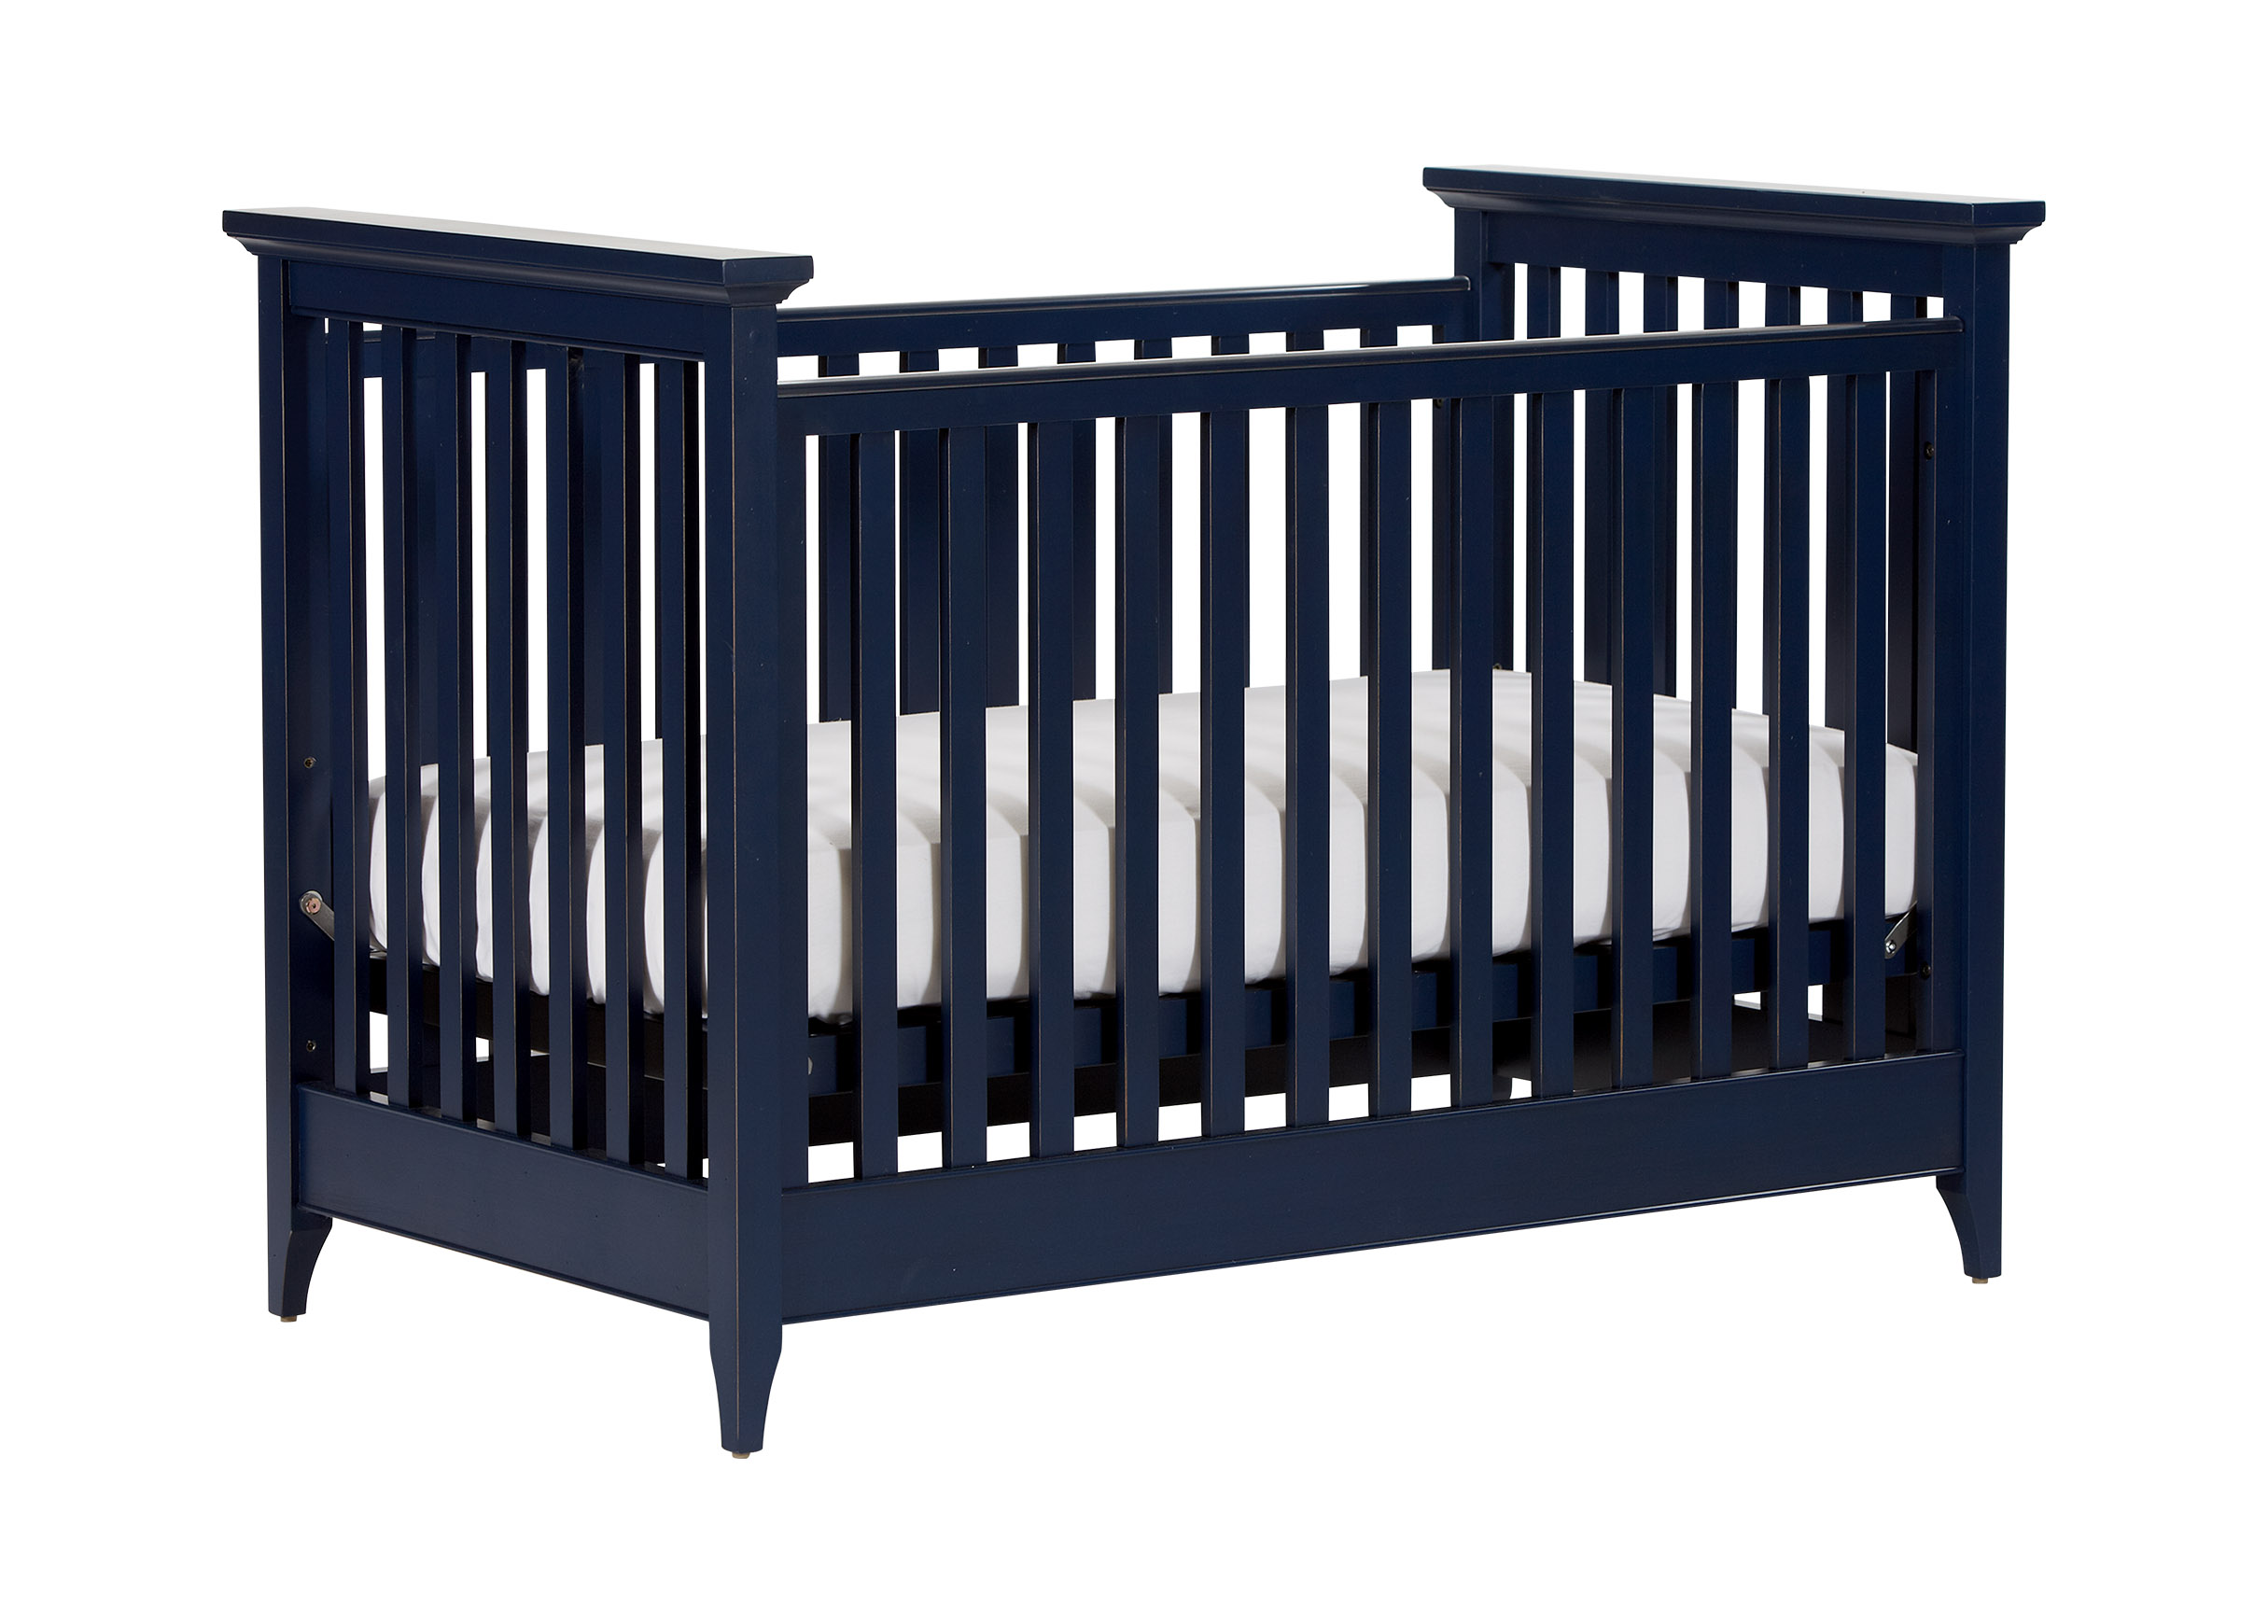 Ethan allen crib for sale - Images Kingswell Crib Large_gray